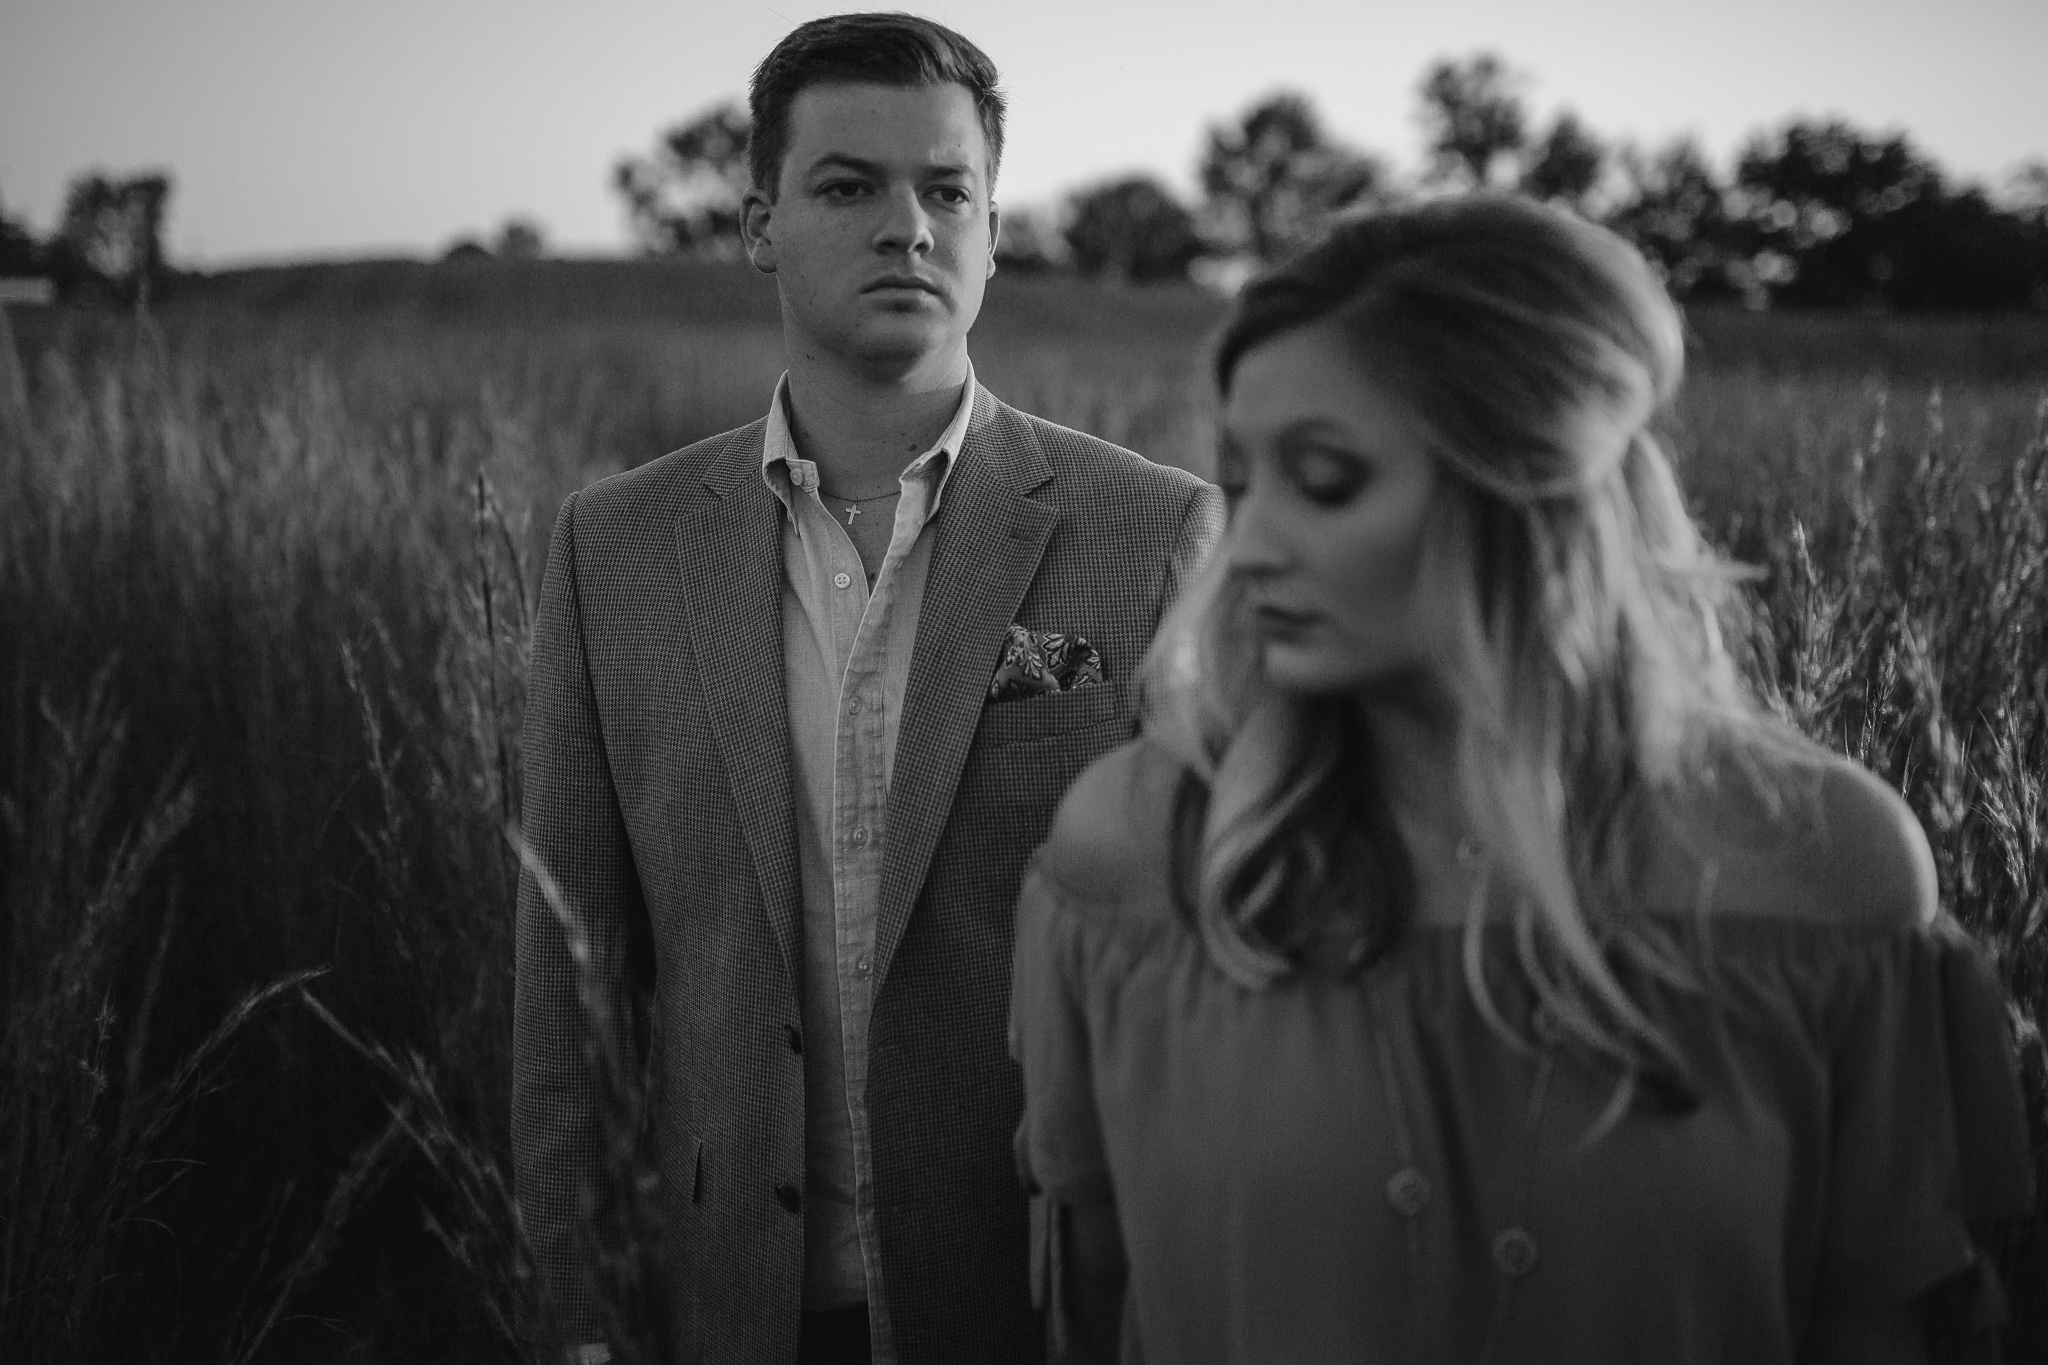 cassie-cook-photography-memphis-wedding-photographer-engagement-pictures-alexis-ryan-fall-pictures-hernando-ms-28.jpg